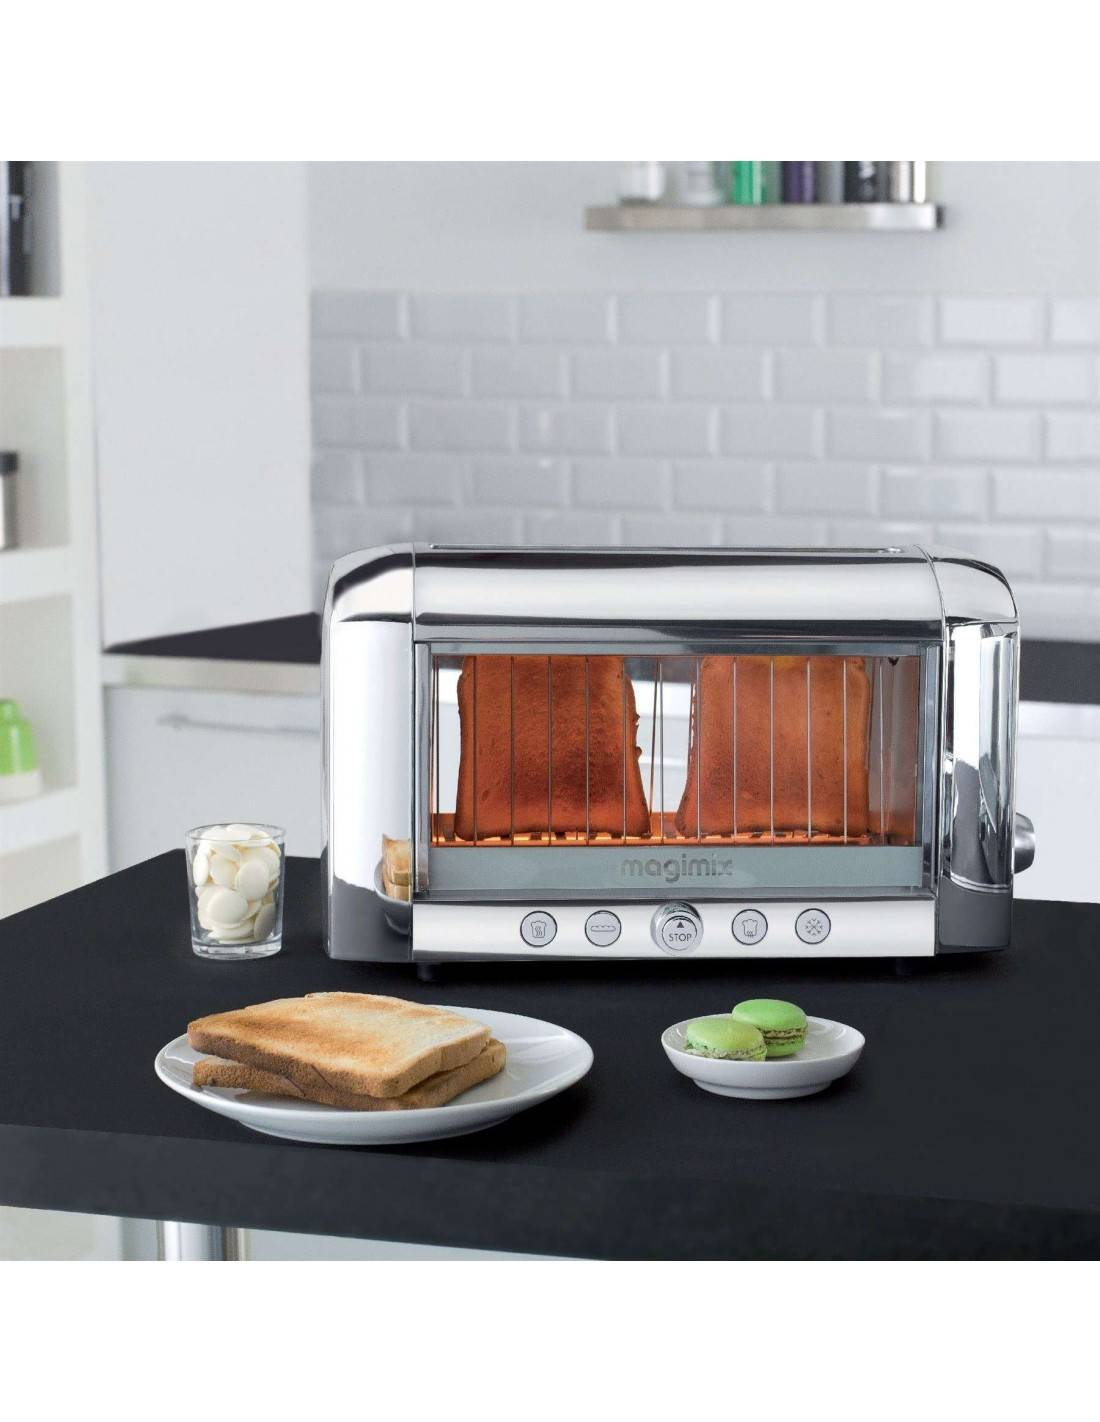 magimix vision toaster mimocook online store. Black Bedroom Furniture Sets. Home Design Ideas